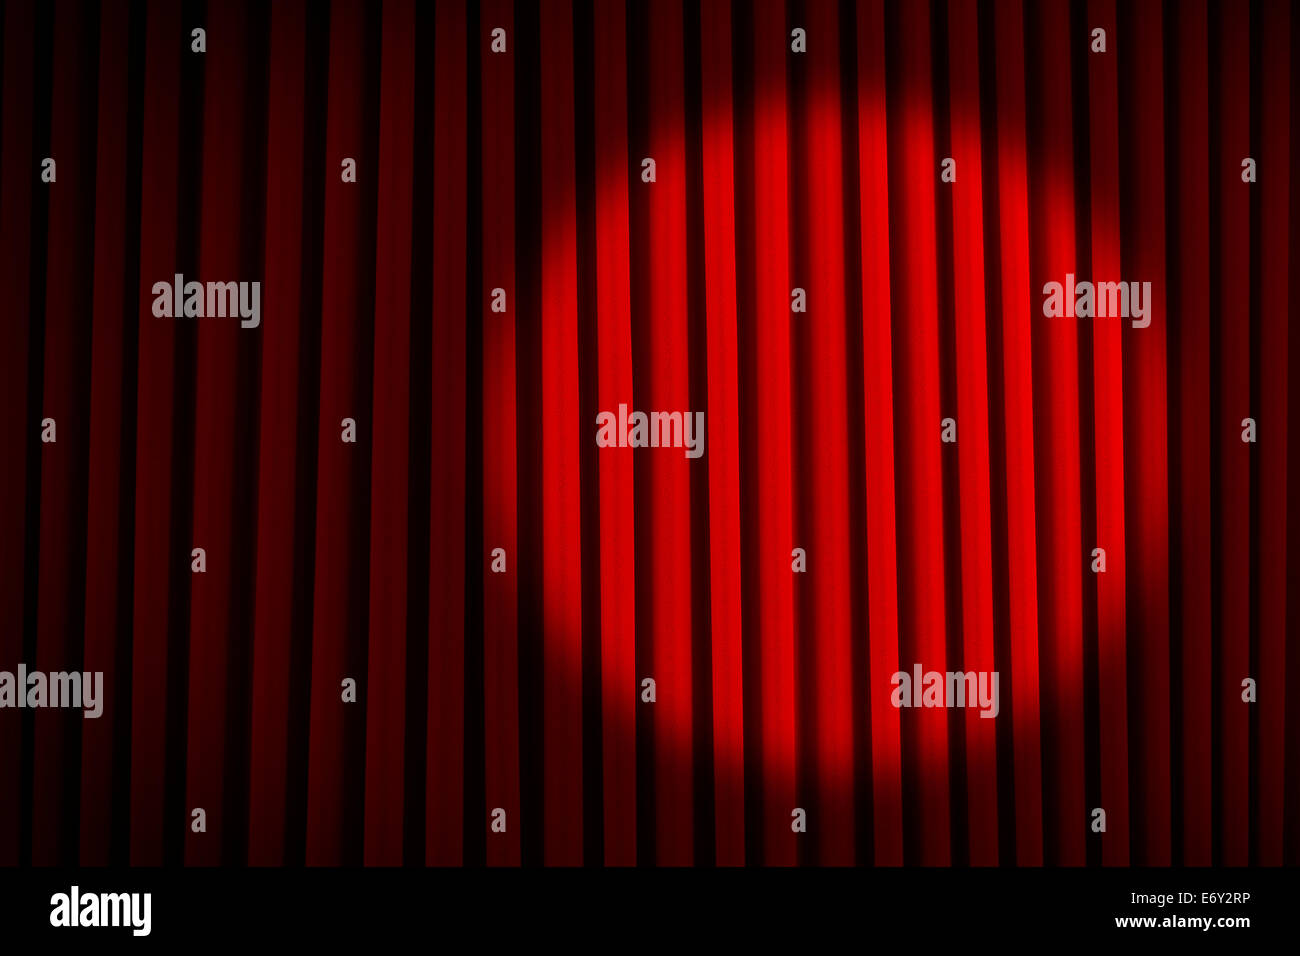 Red Velvet Stage Curtains with Round Spotlight. - Stock Image